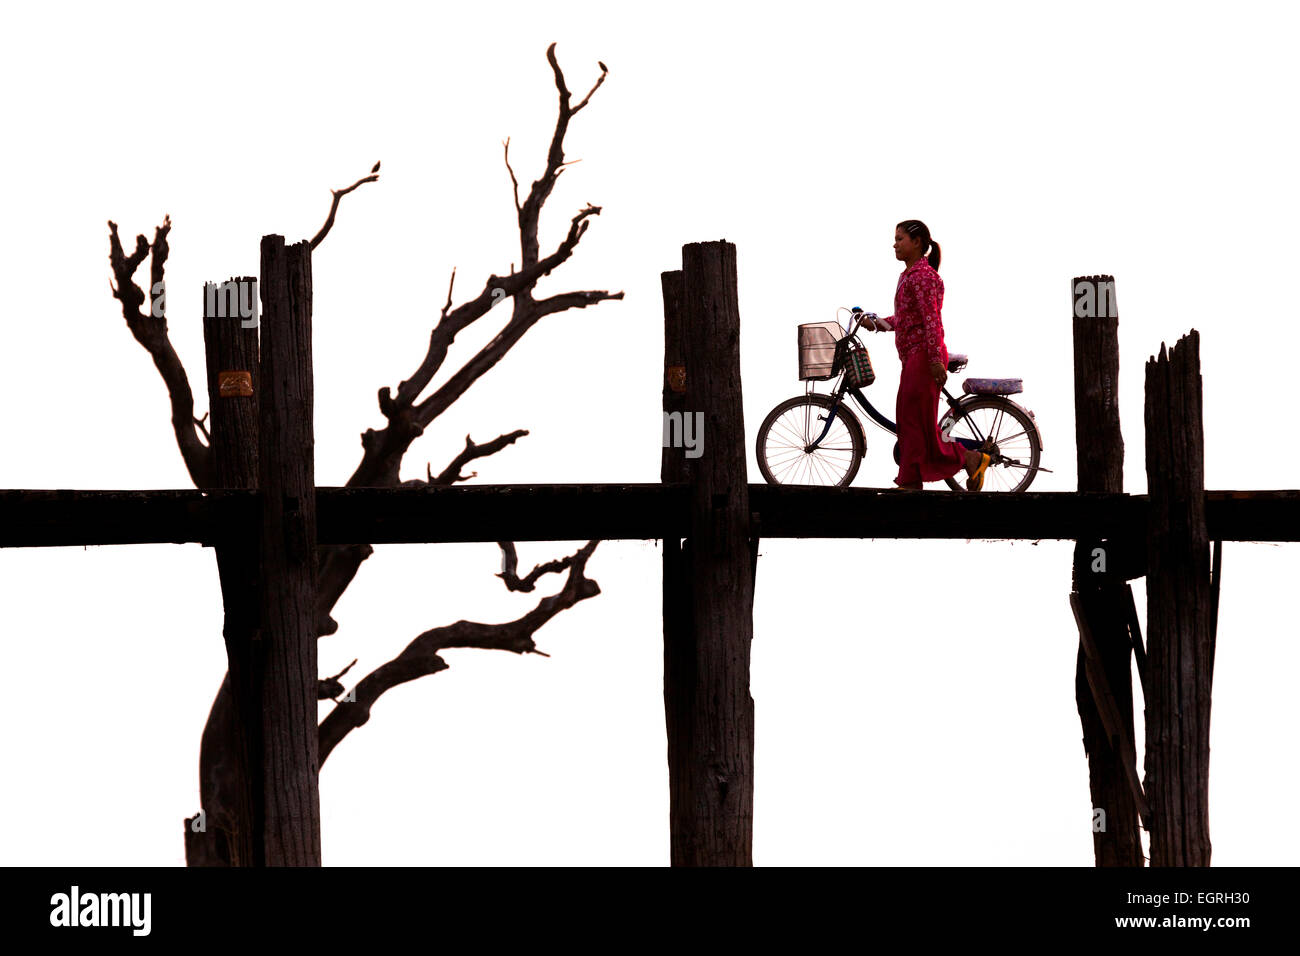 A woman pushing a bicycle on U Bein bridge, Mandalay, Myanmar ( Burma ), Asia - Stock Image